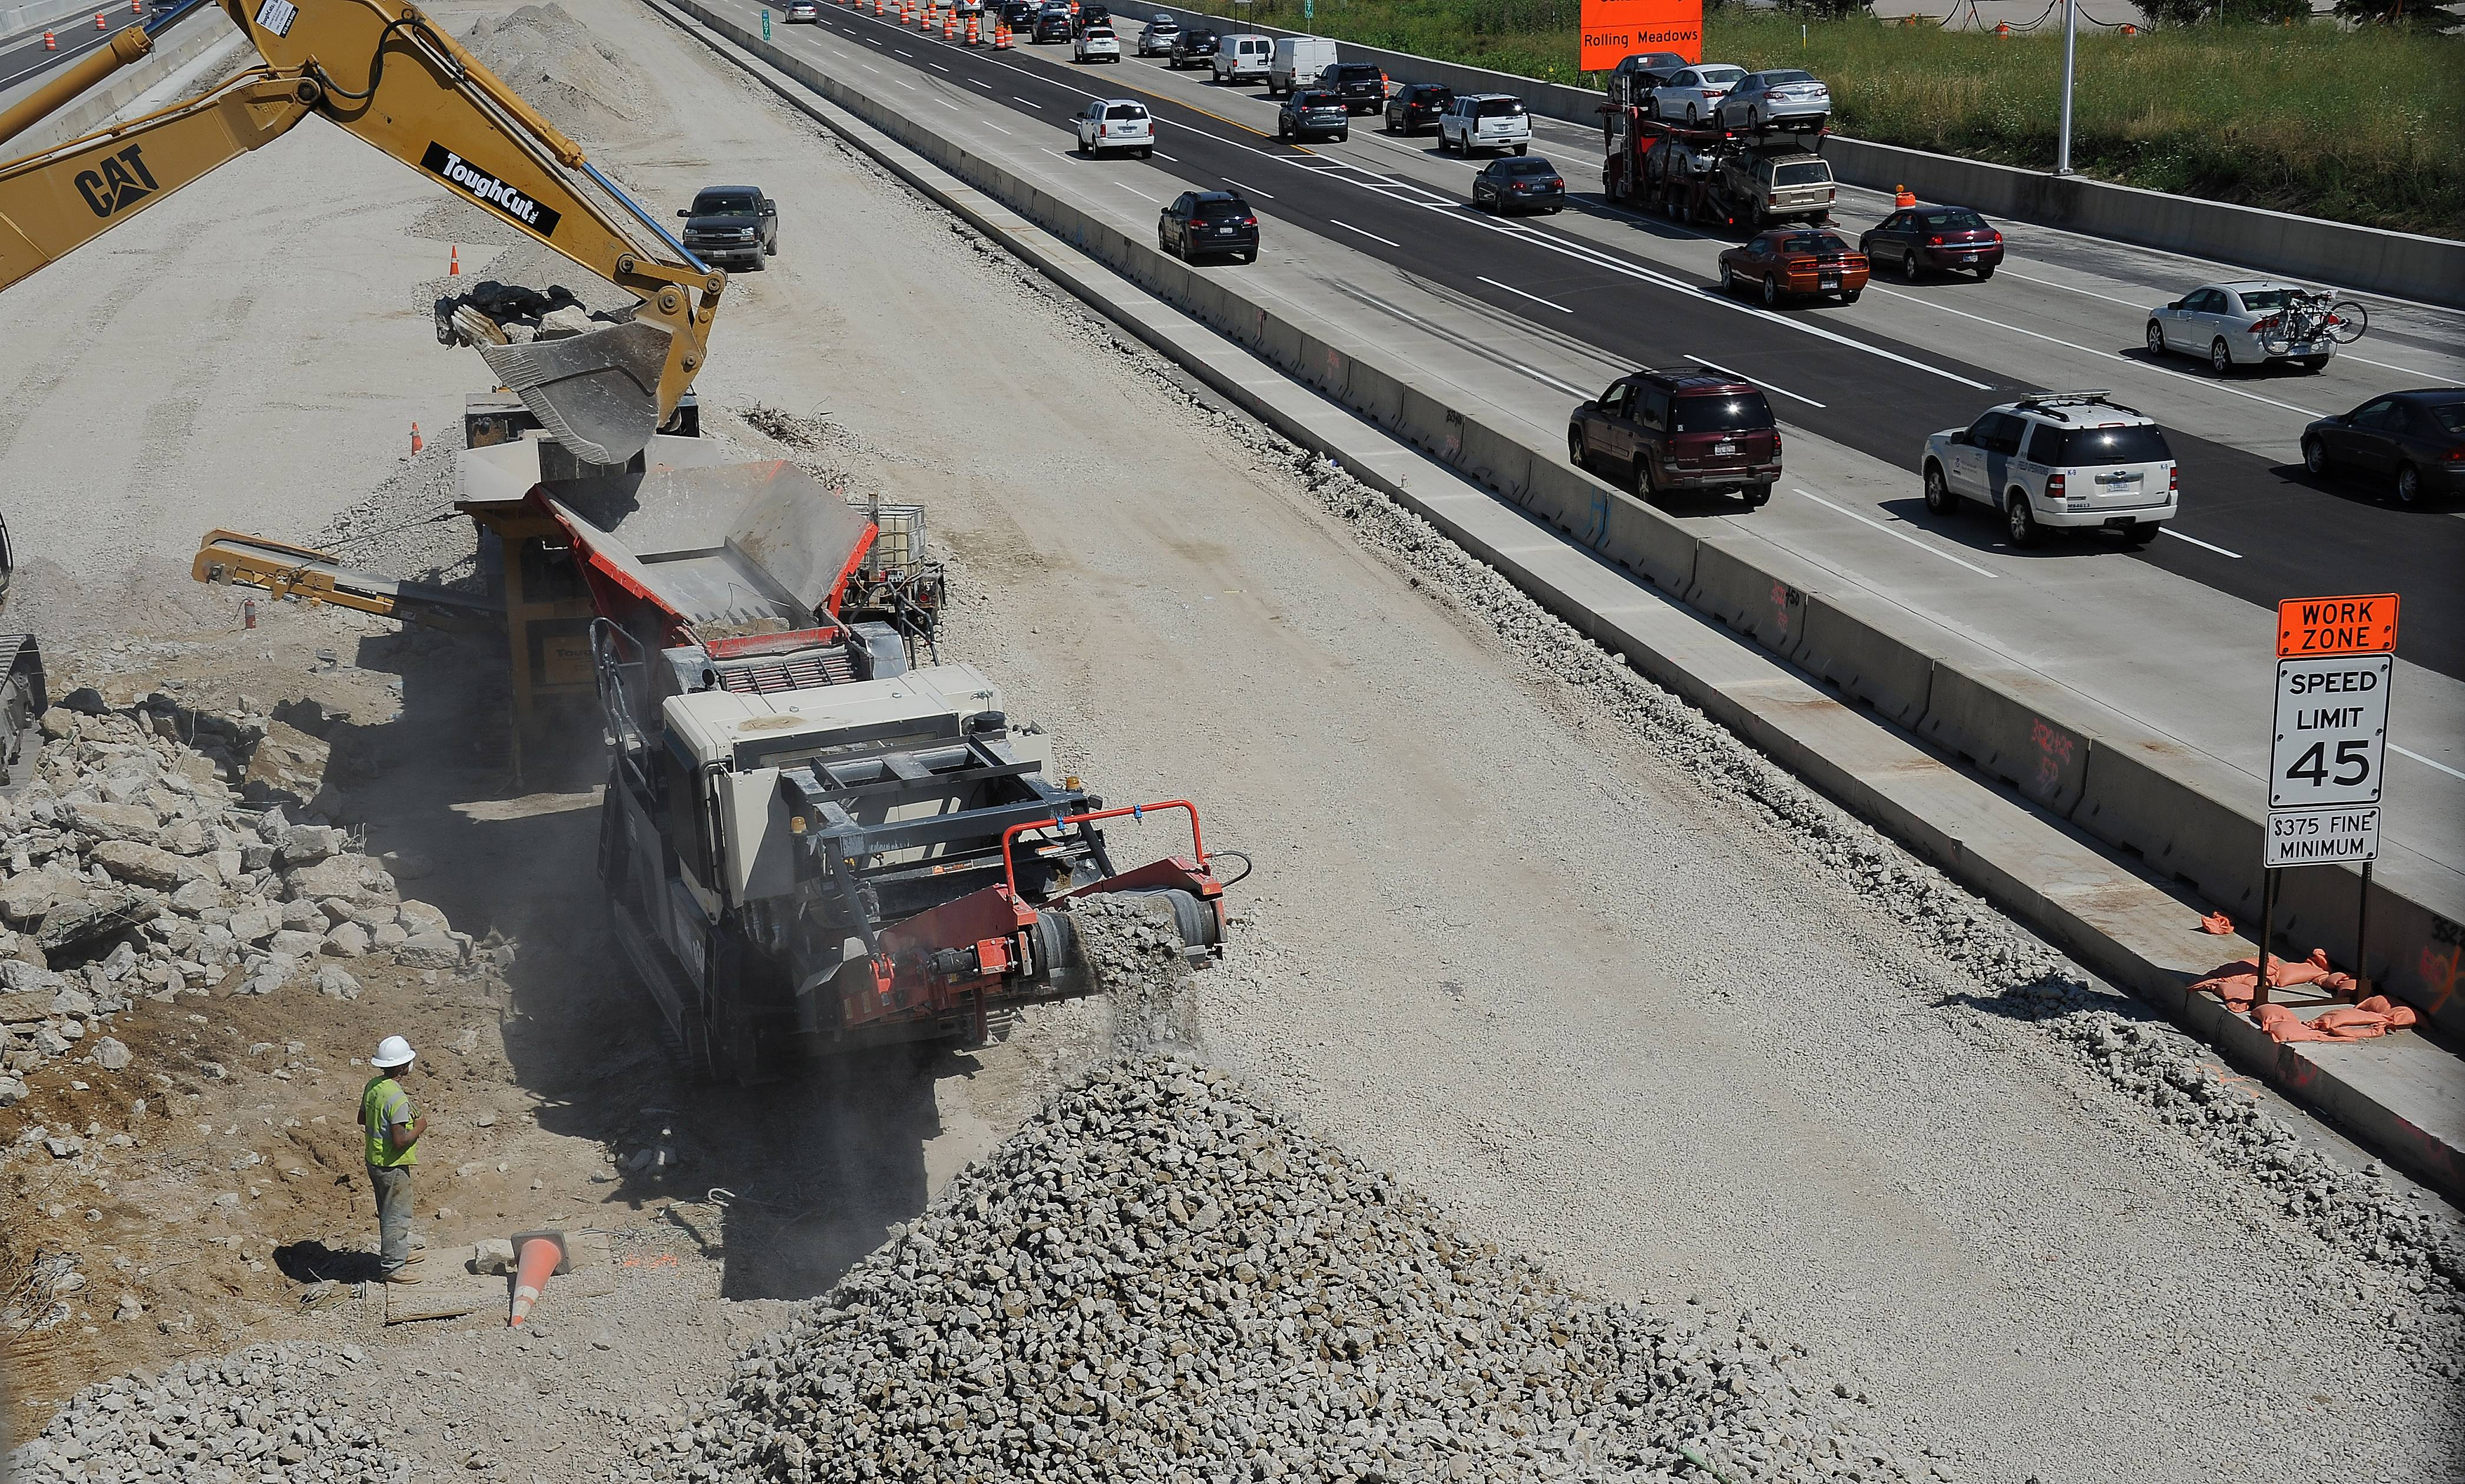 Engineering firm fights $43 million tollway spurn